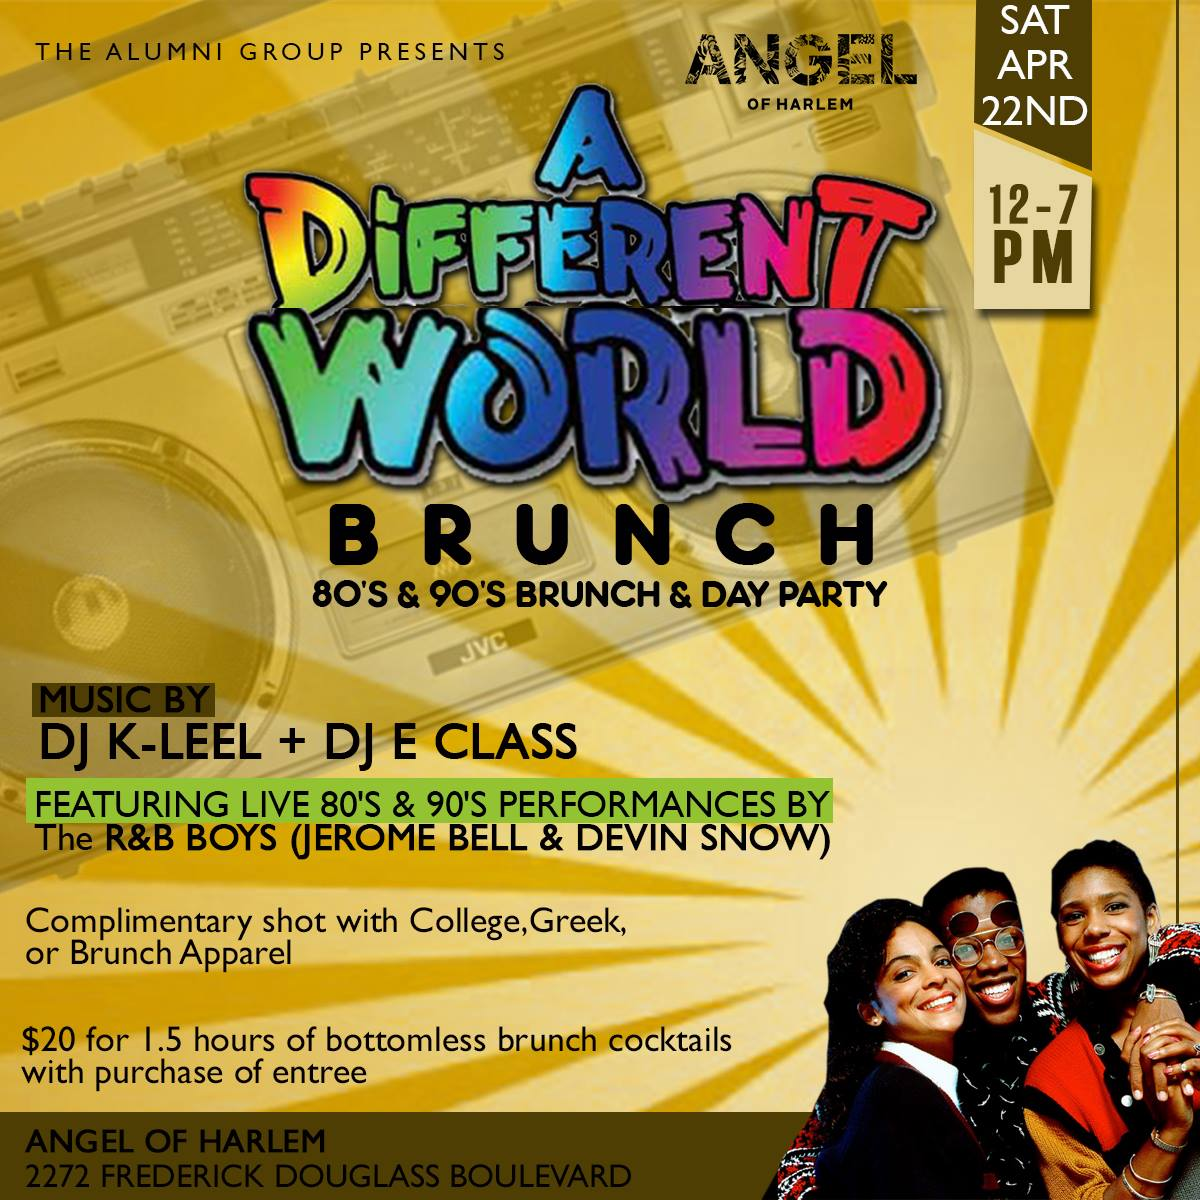 A Different World Brunch & Day Party